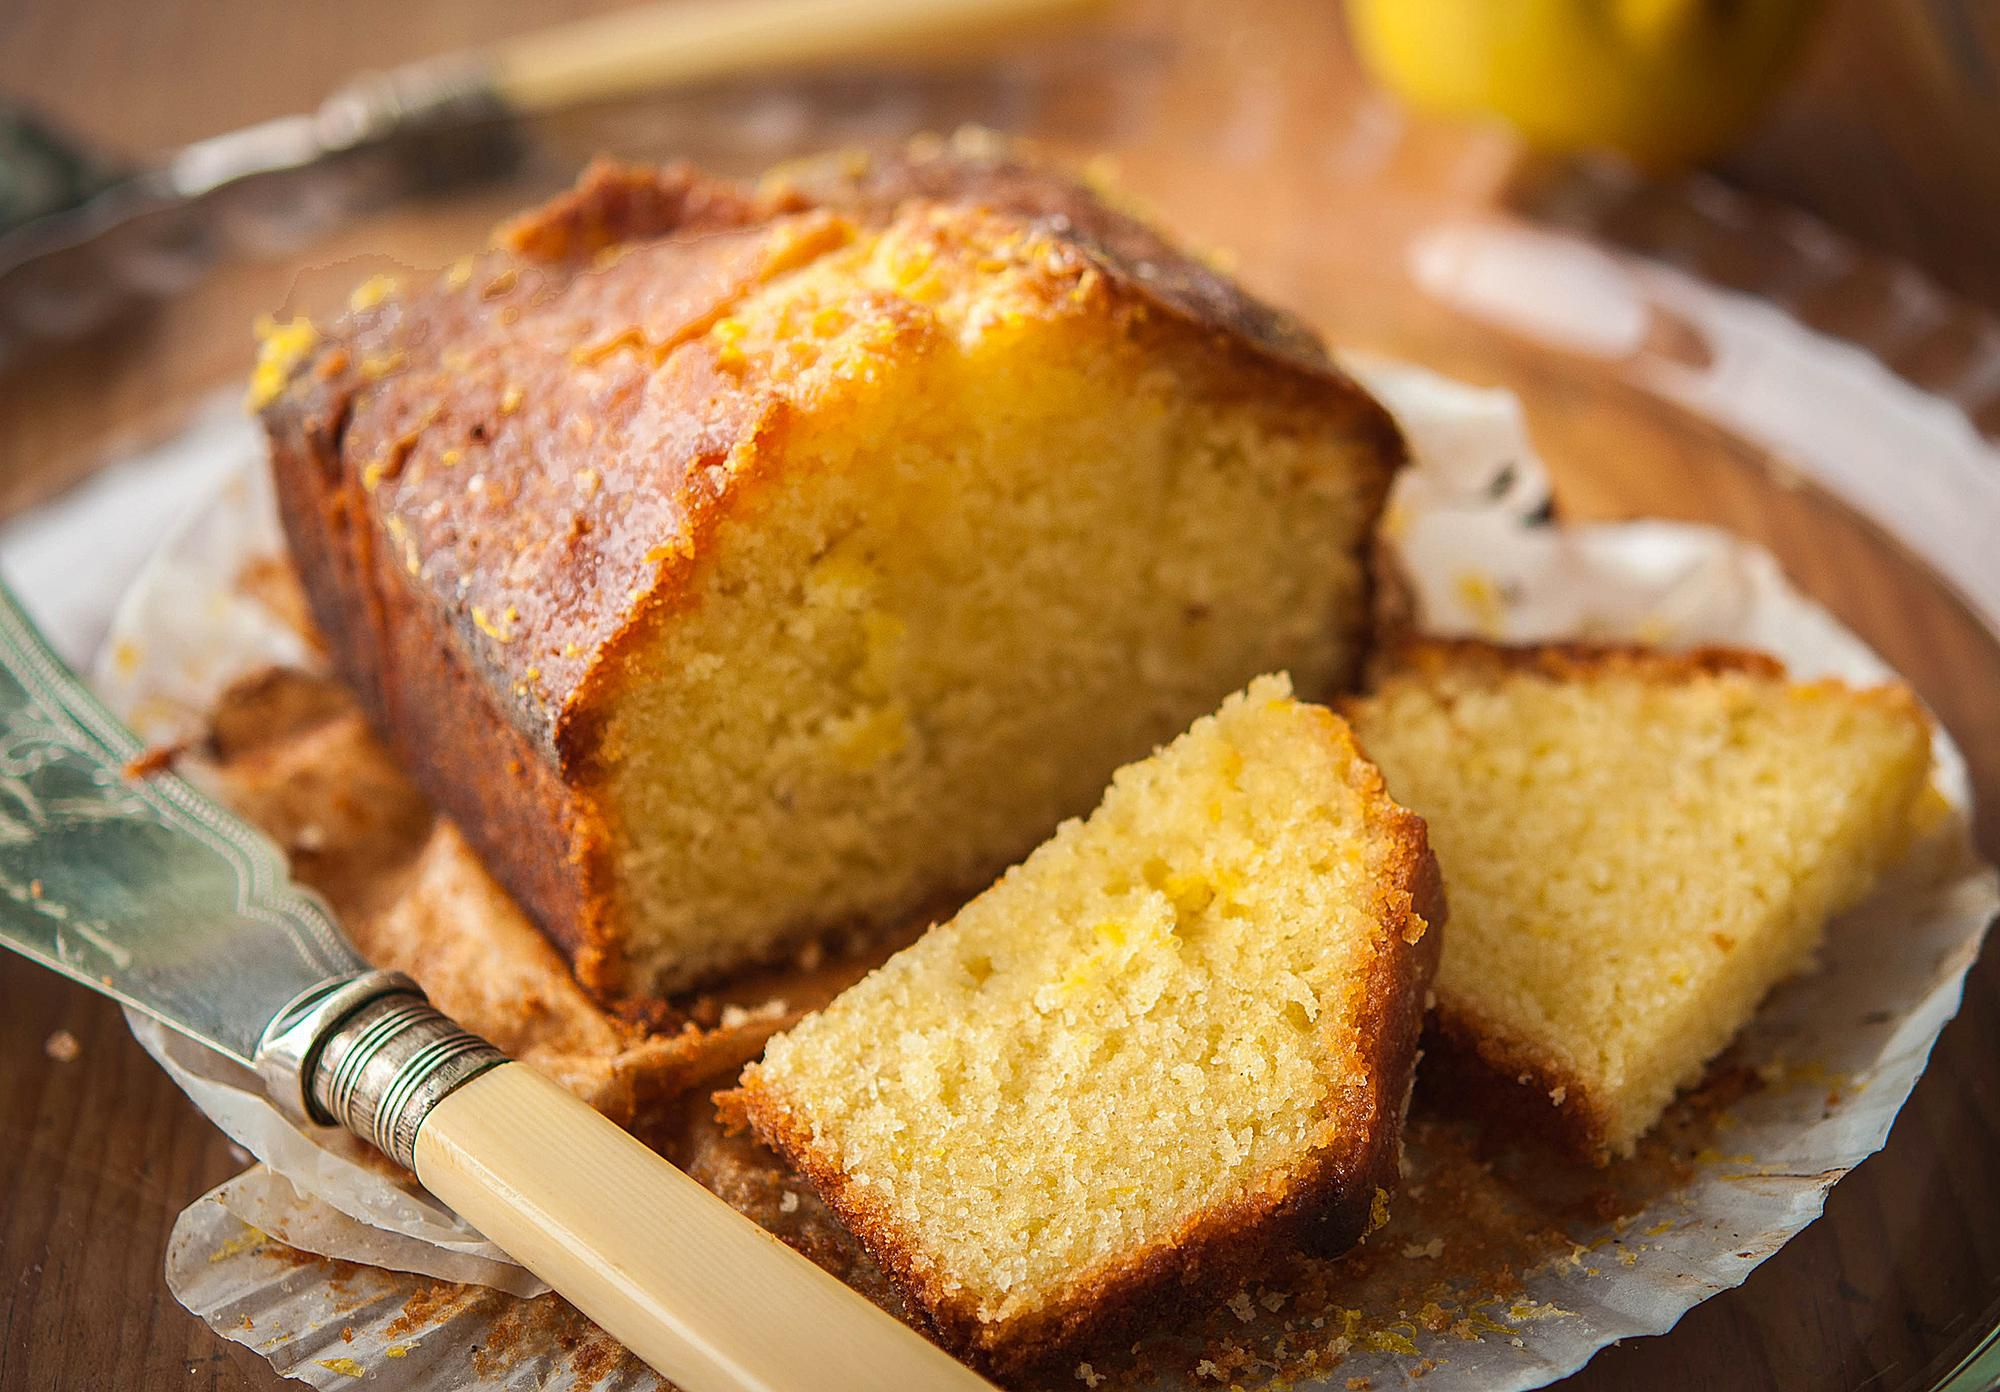 Recipes Using Lemon Drizzle Cake: The Ultimate Lemon Drizzle Cake Recipe